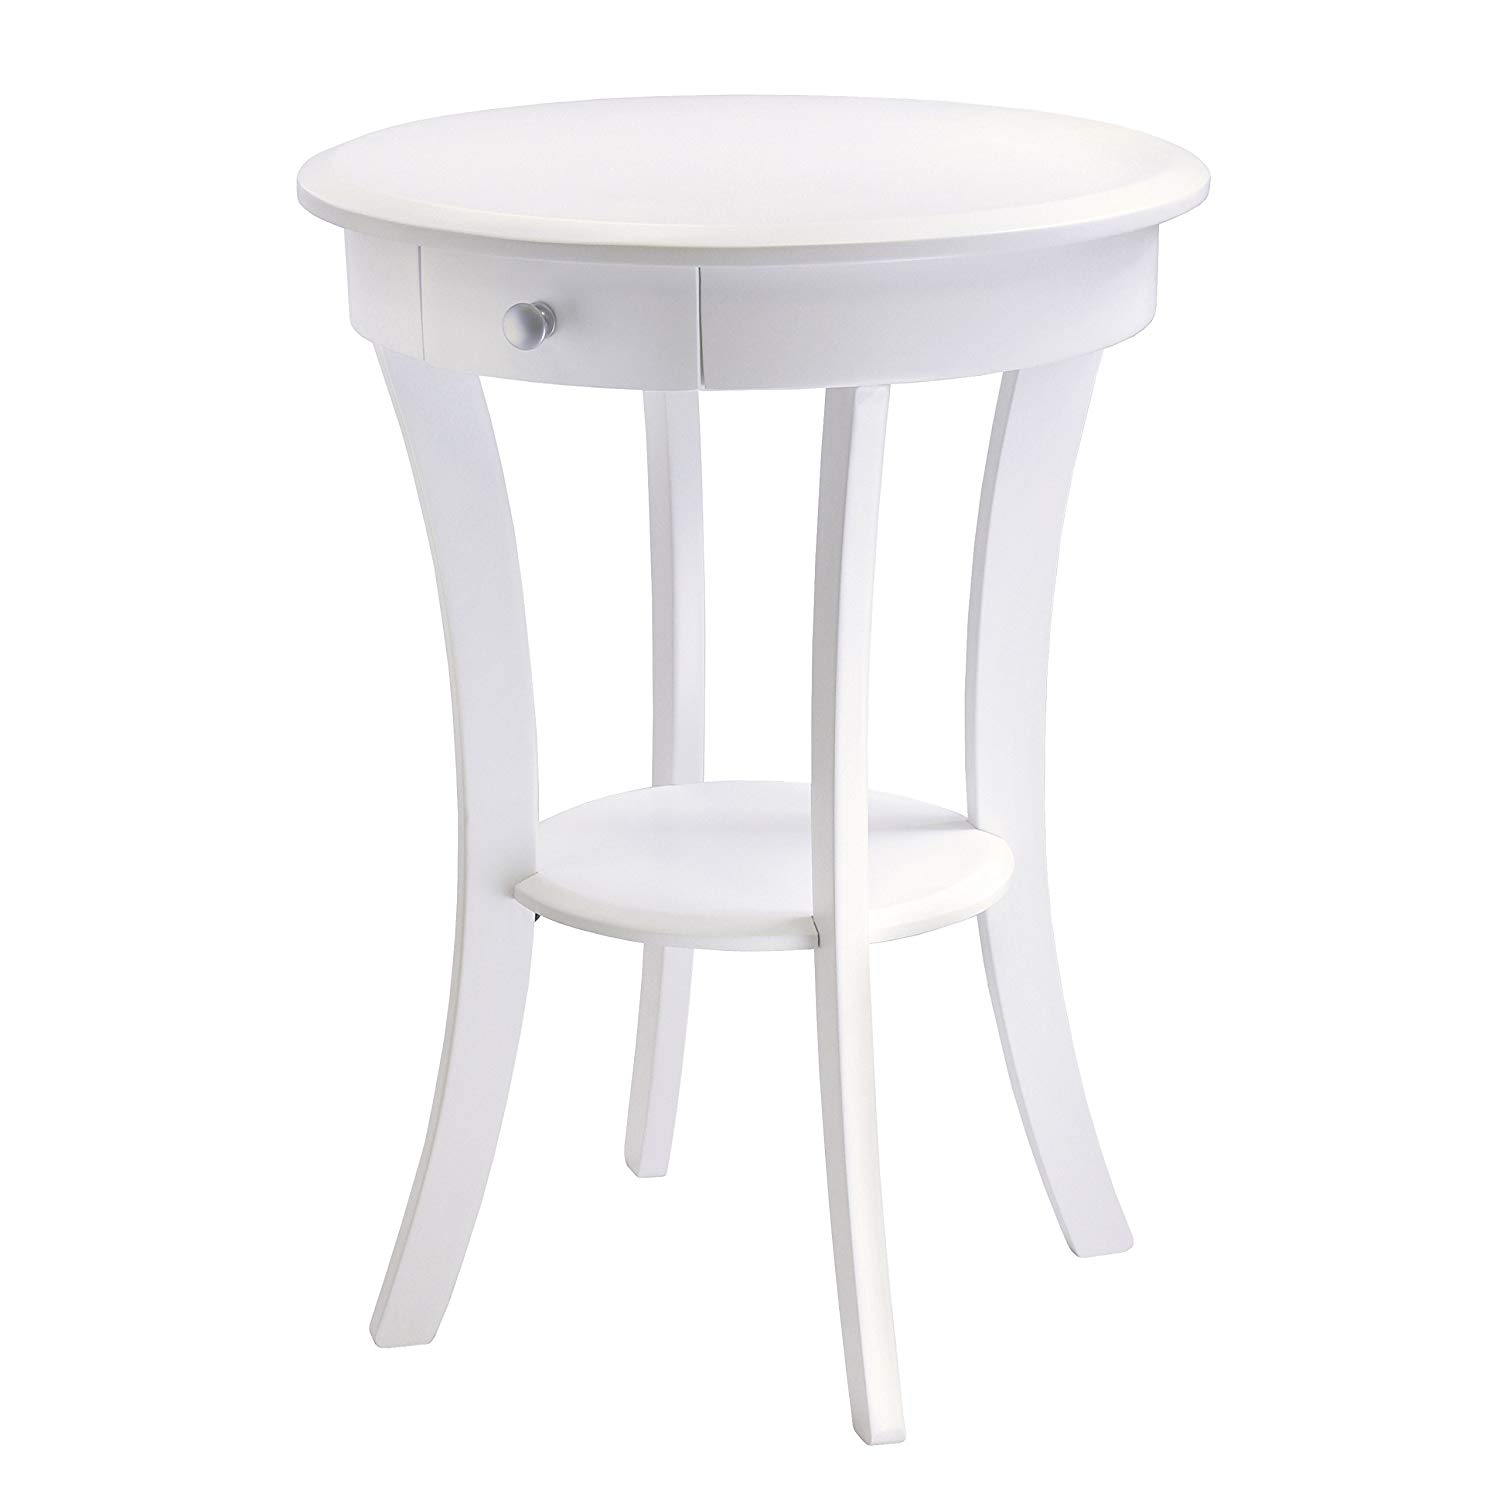 darley accent yellow redmond painting kijiji hafley plus table tiffany design mini shades ideas tables end outdoor target living lighting contemporary color diy for full size